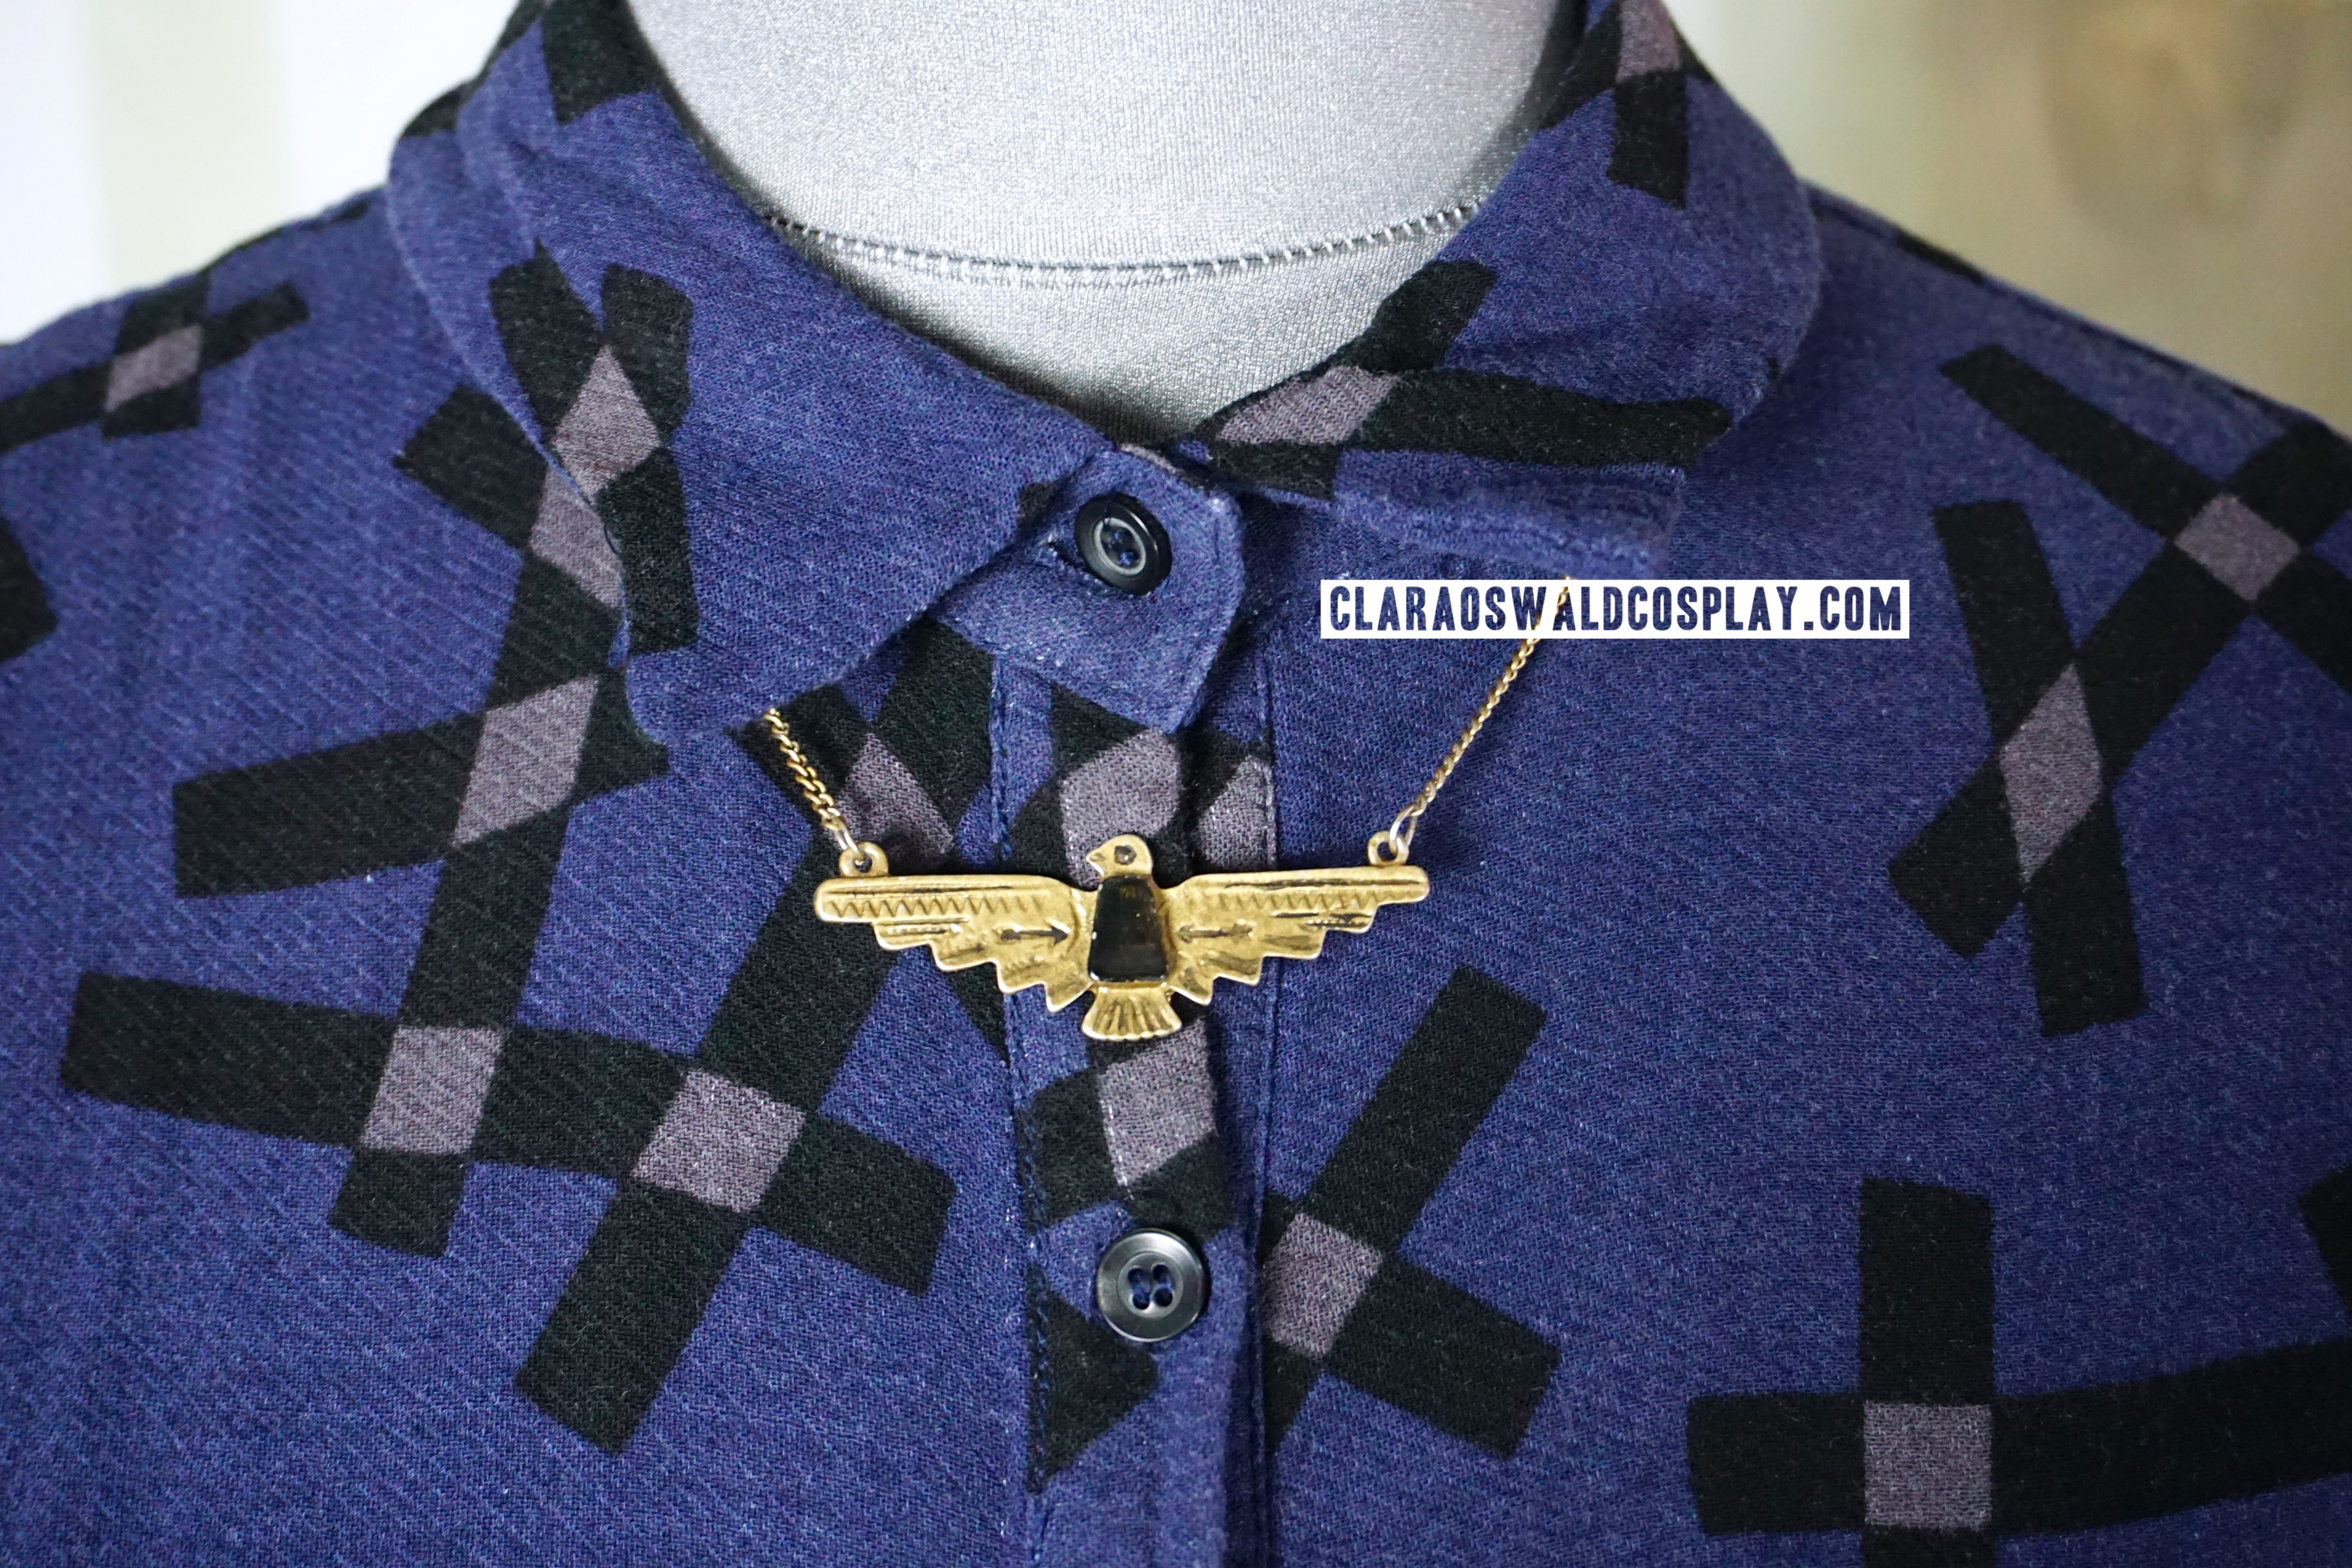 The Urban Outfitters Aztec Eagle Necklace also goes with the Rings of Akhaten outfit